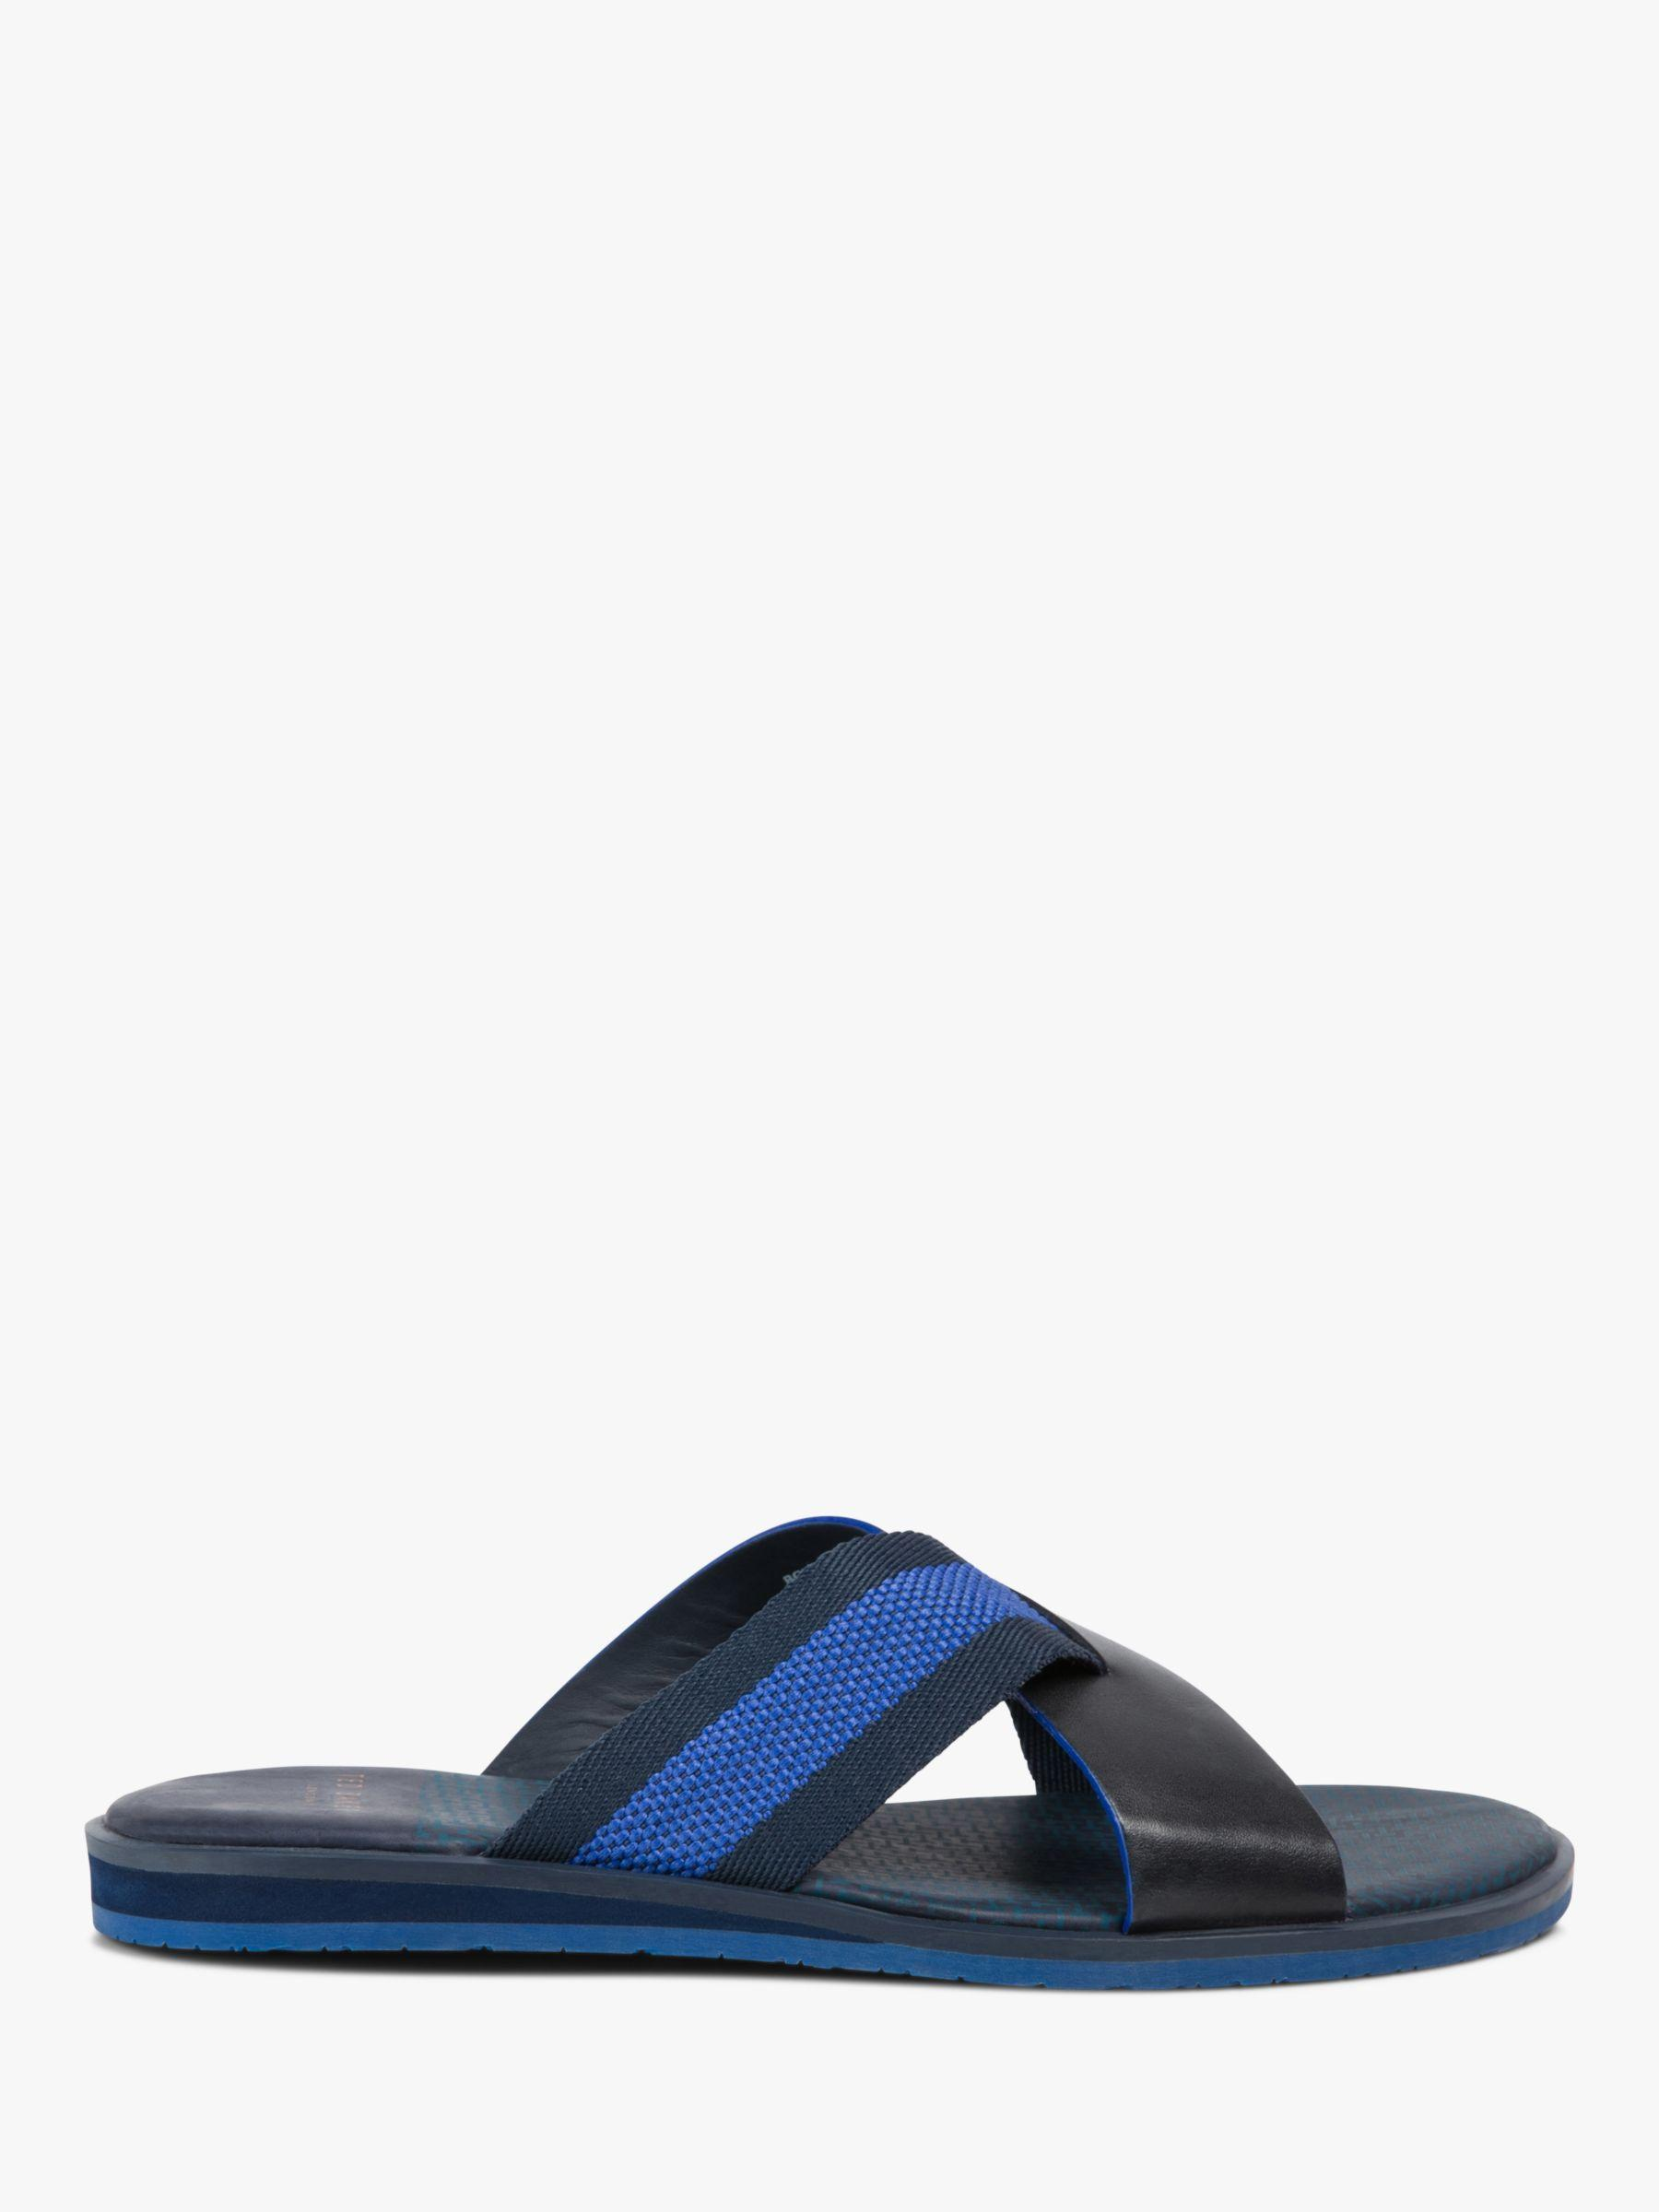 549deffa4 Ted Baker Bowdus Sandals in Blue for Men - Lyst